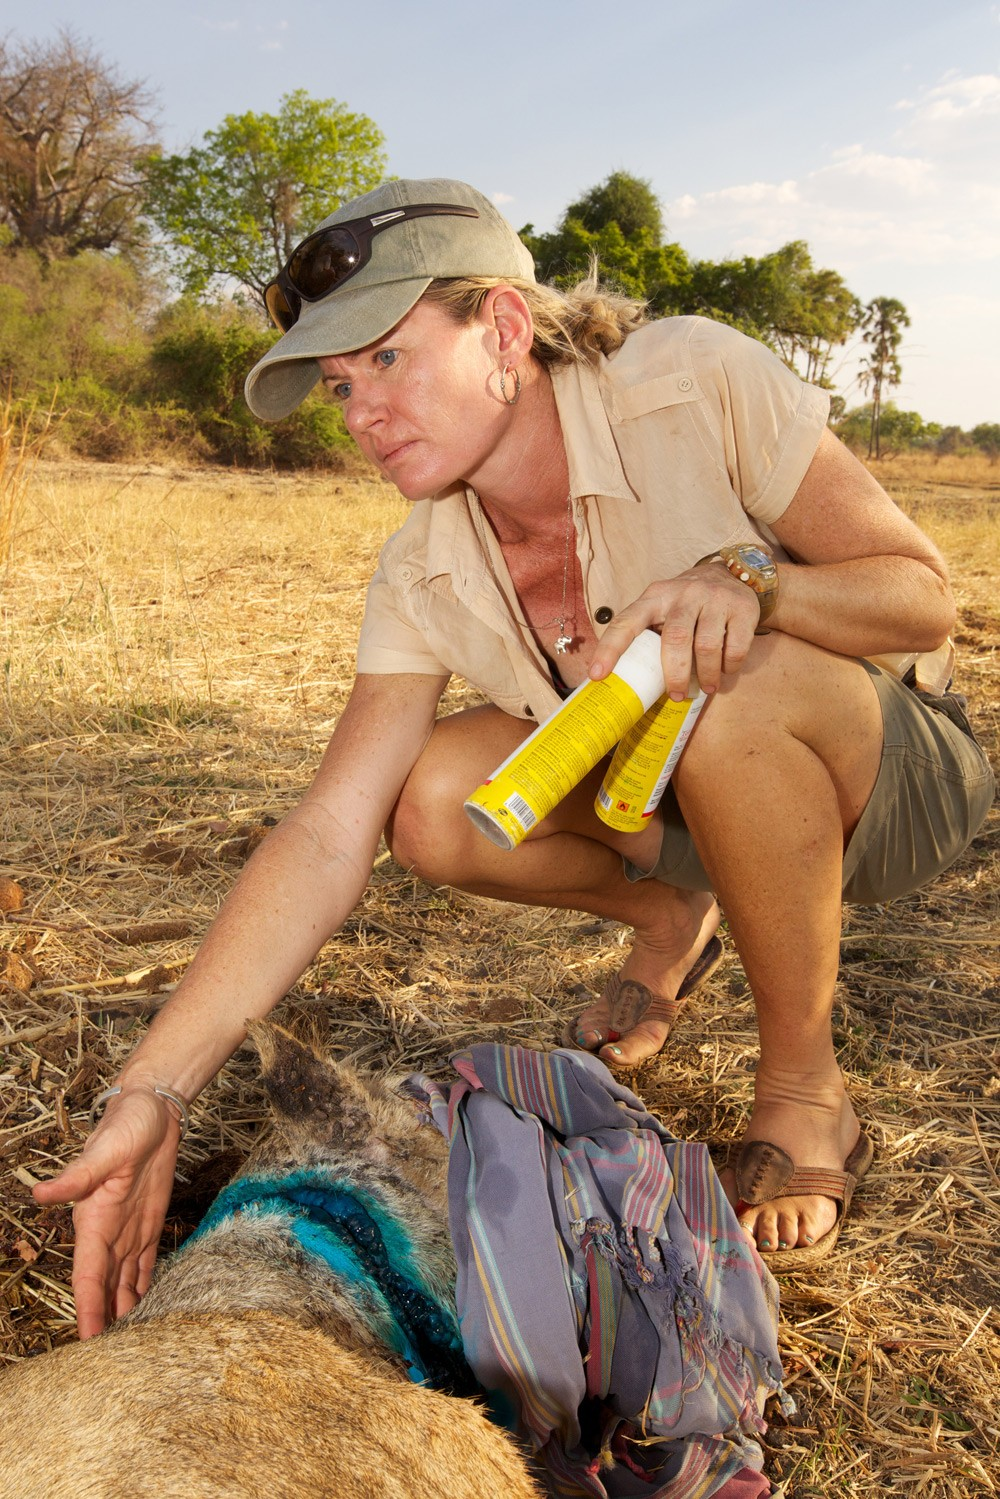 South-Luangwa-199-(Chowo-Lioness-Snare-Removal)